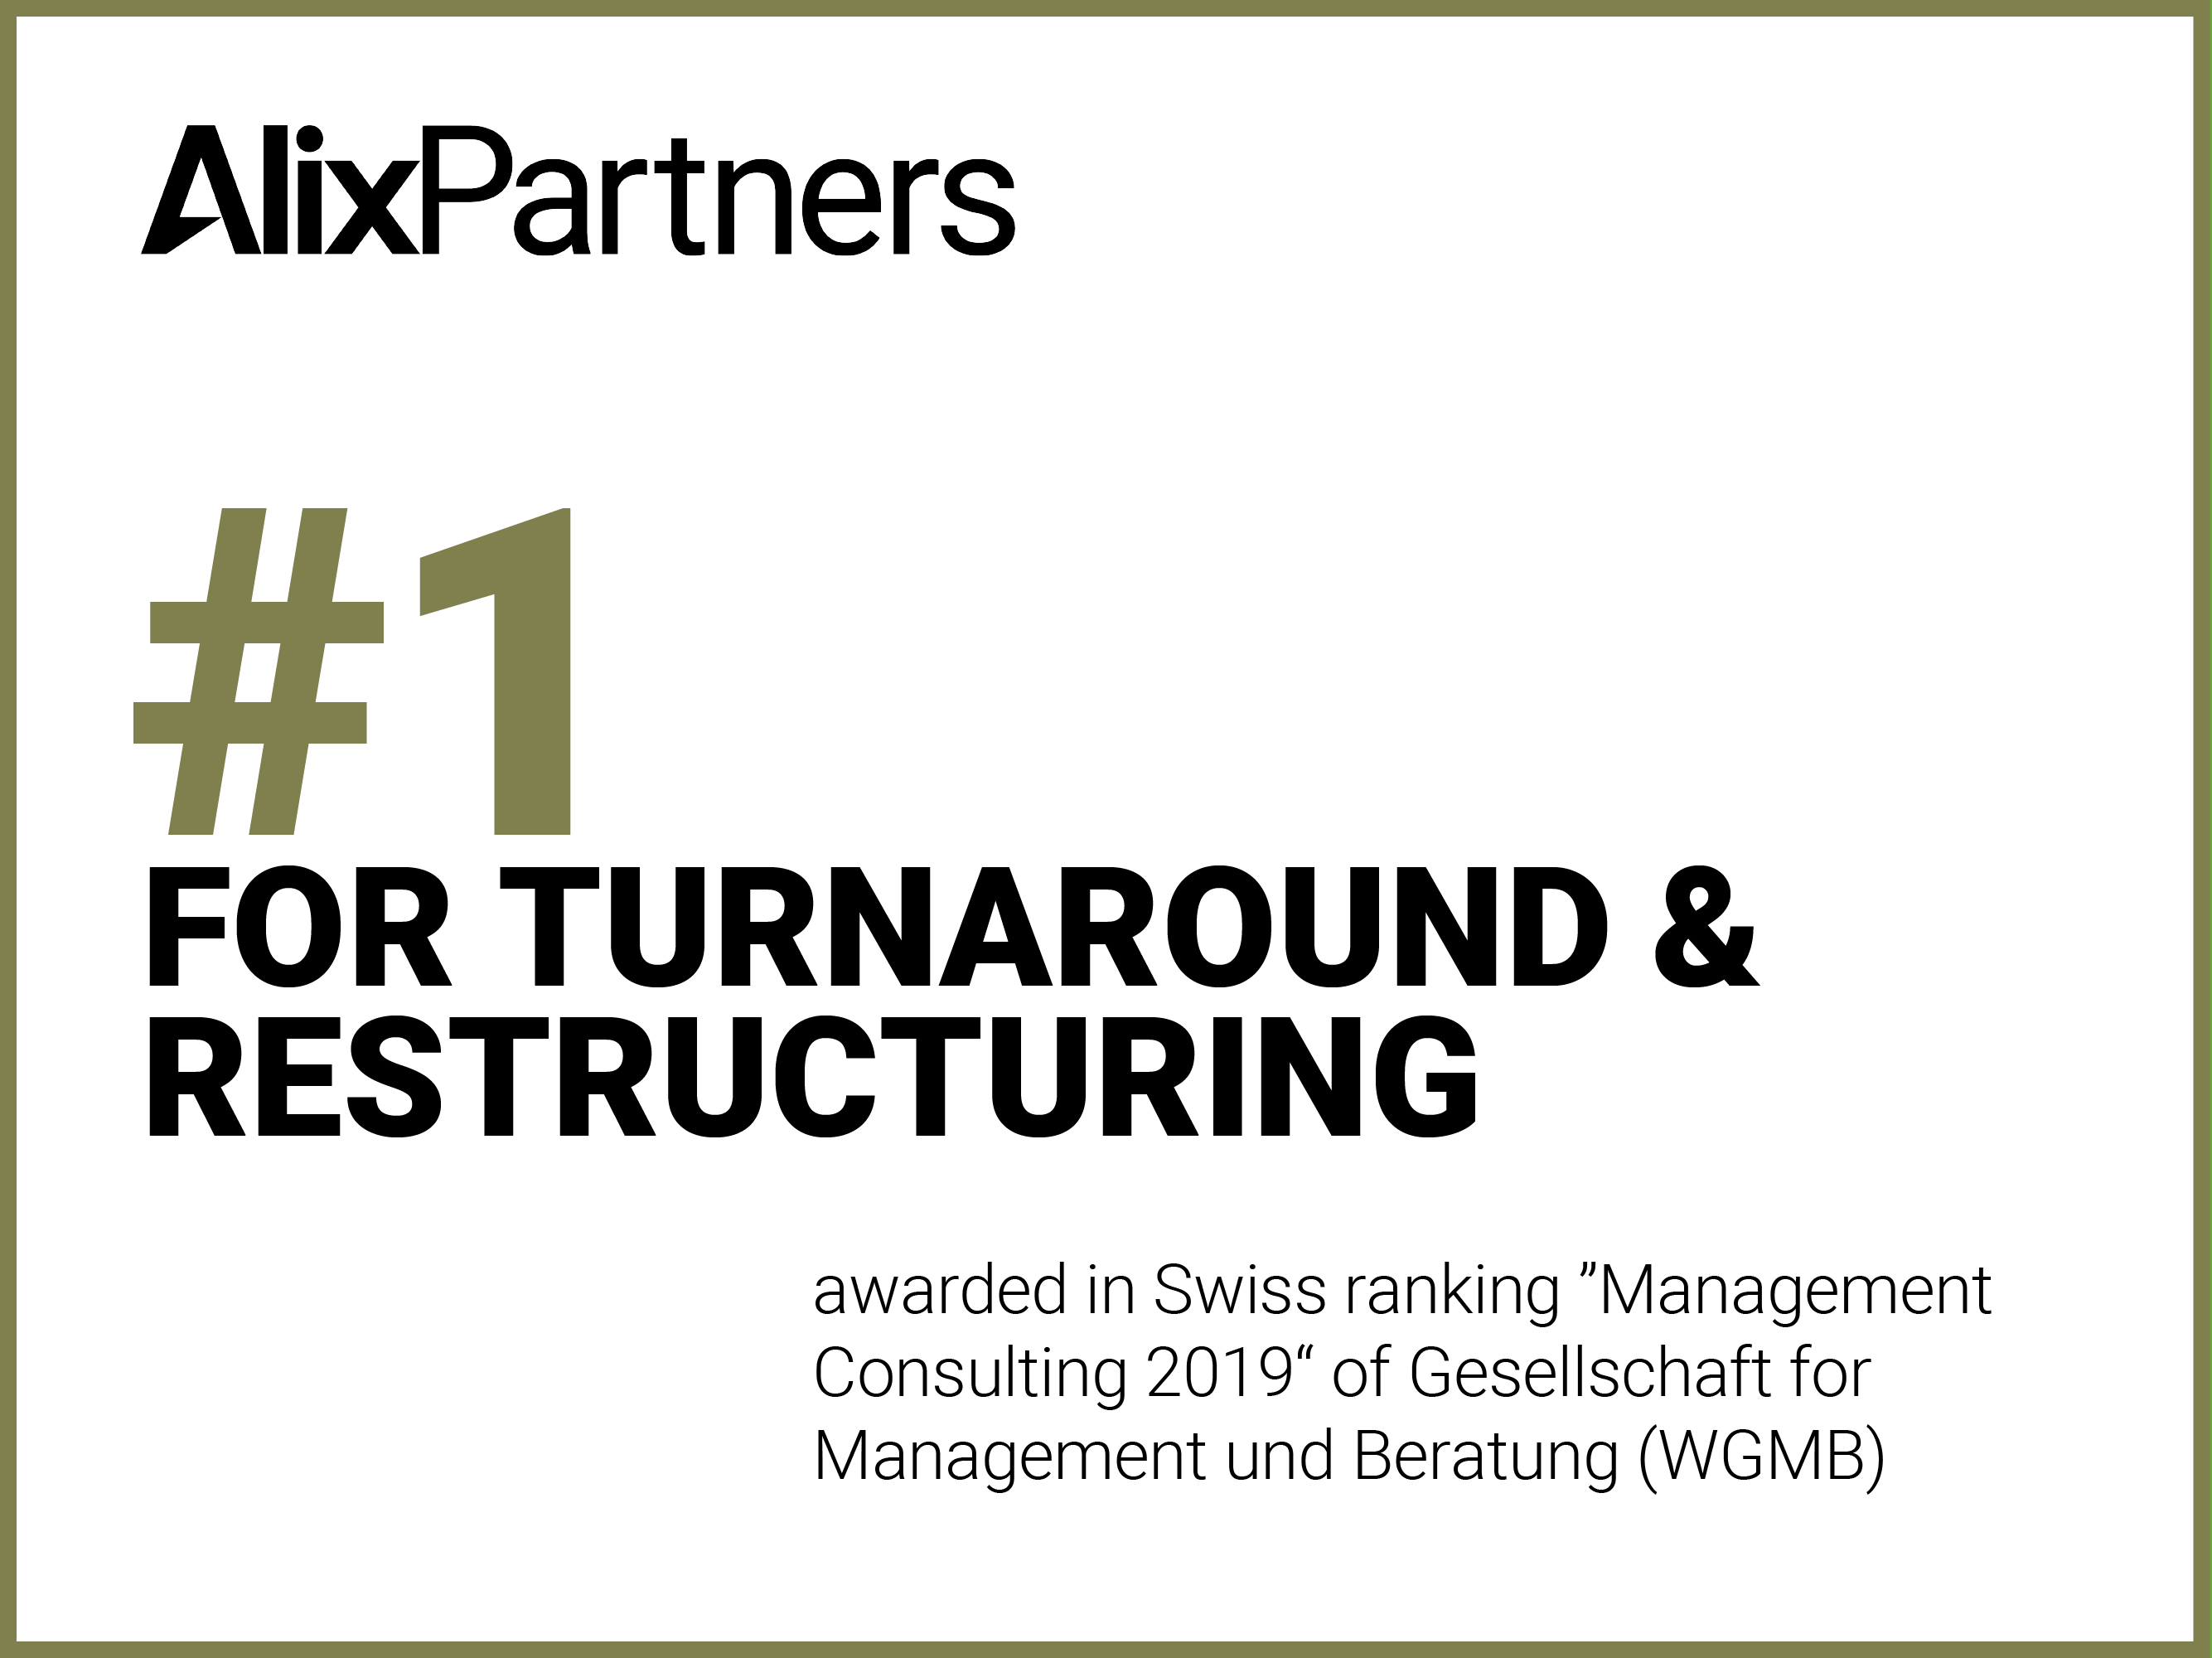 alxpartners named number one in turnaround and restructuring by management und beratung switzerland